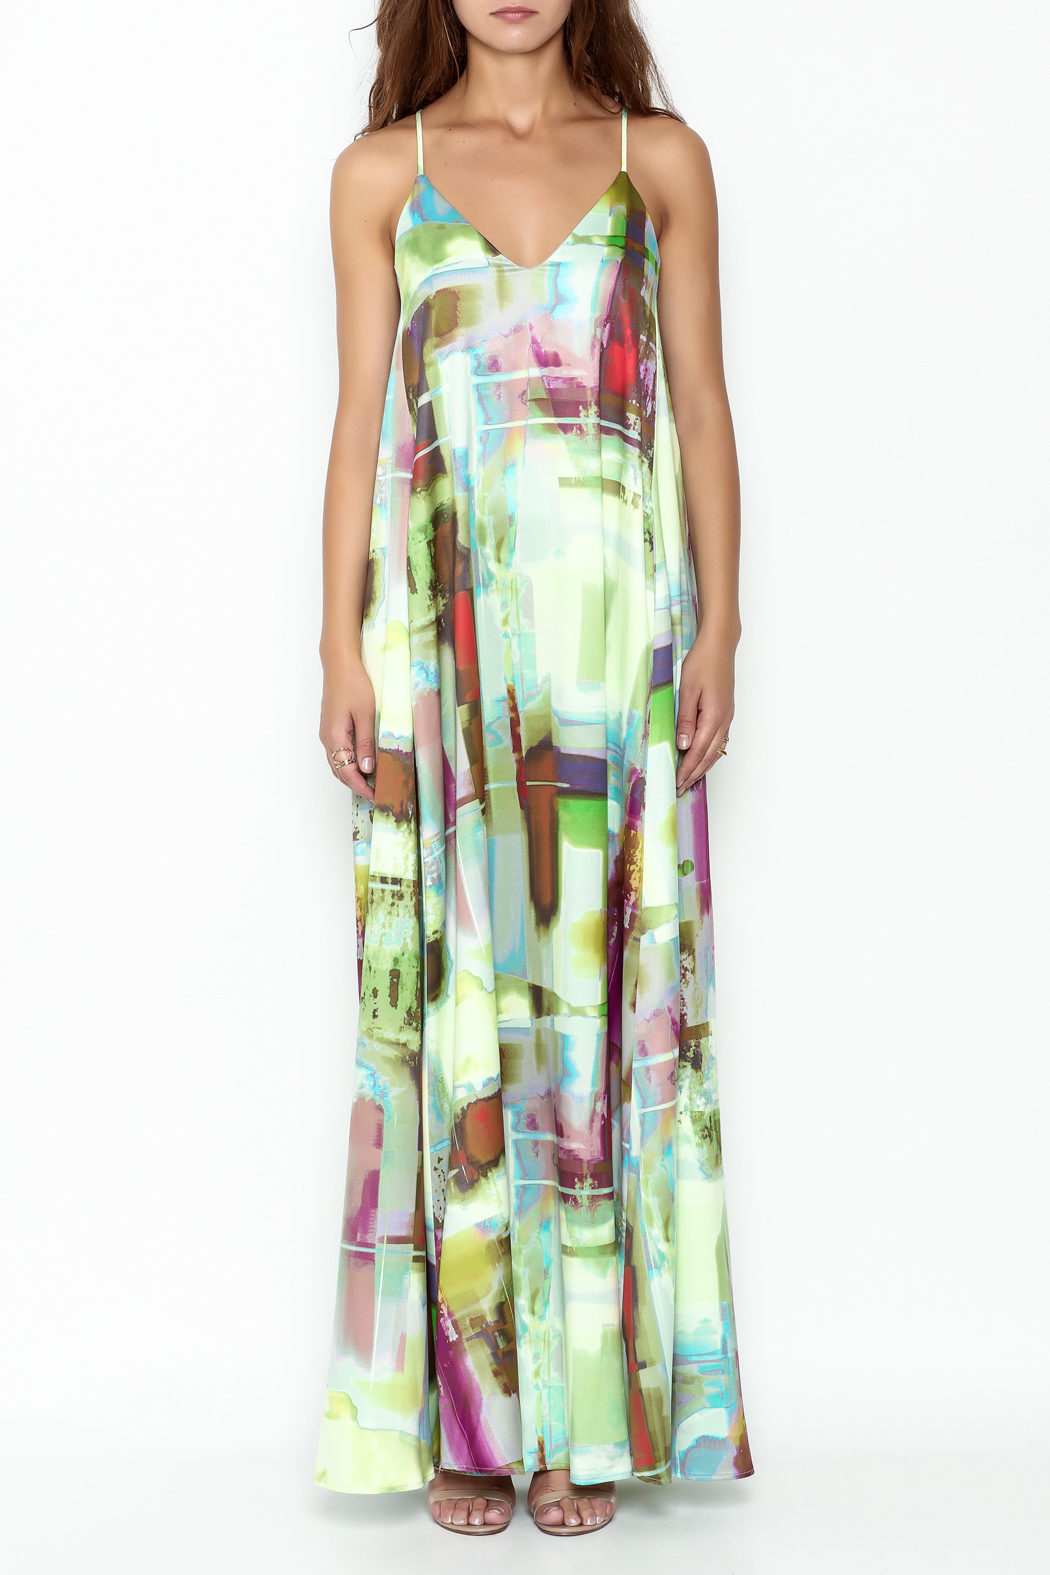 Nicole Miller Watercolor Print Maxi Dress From New